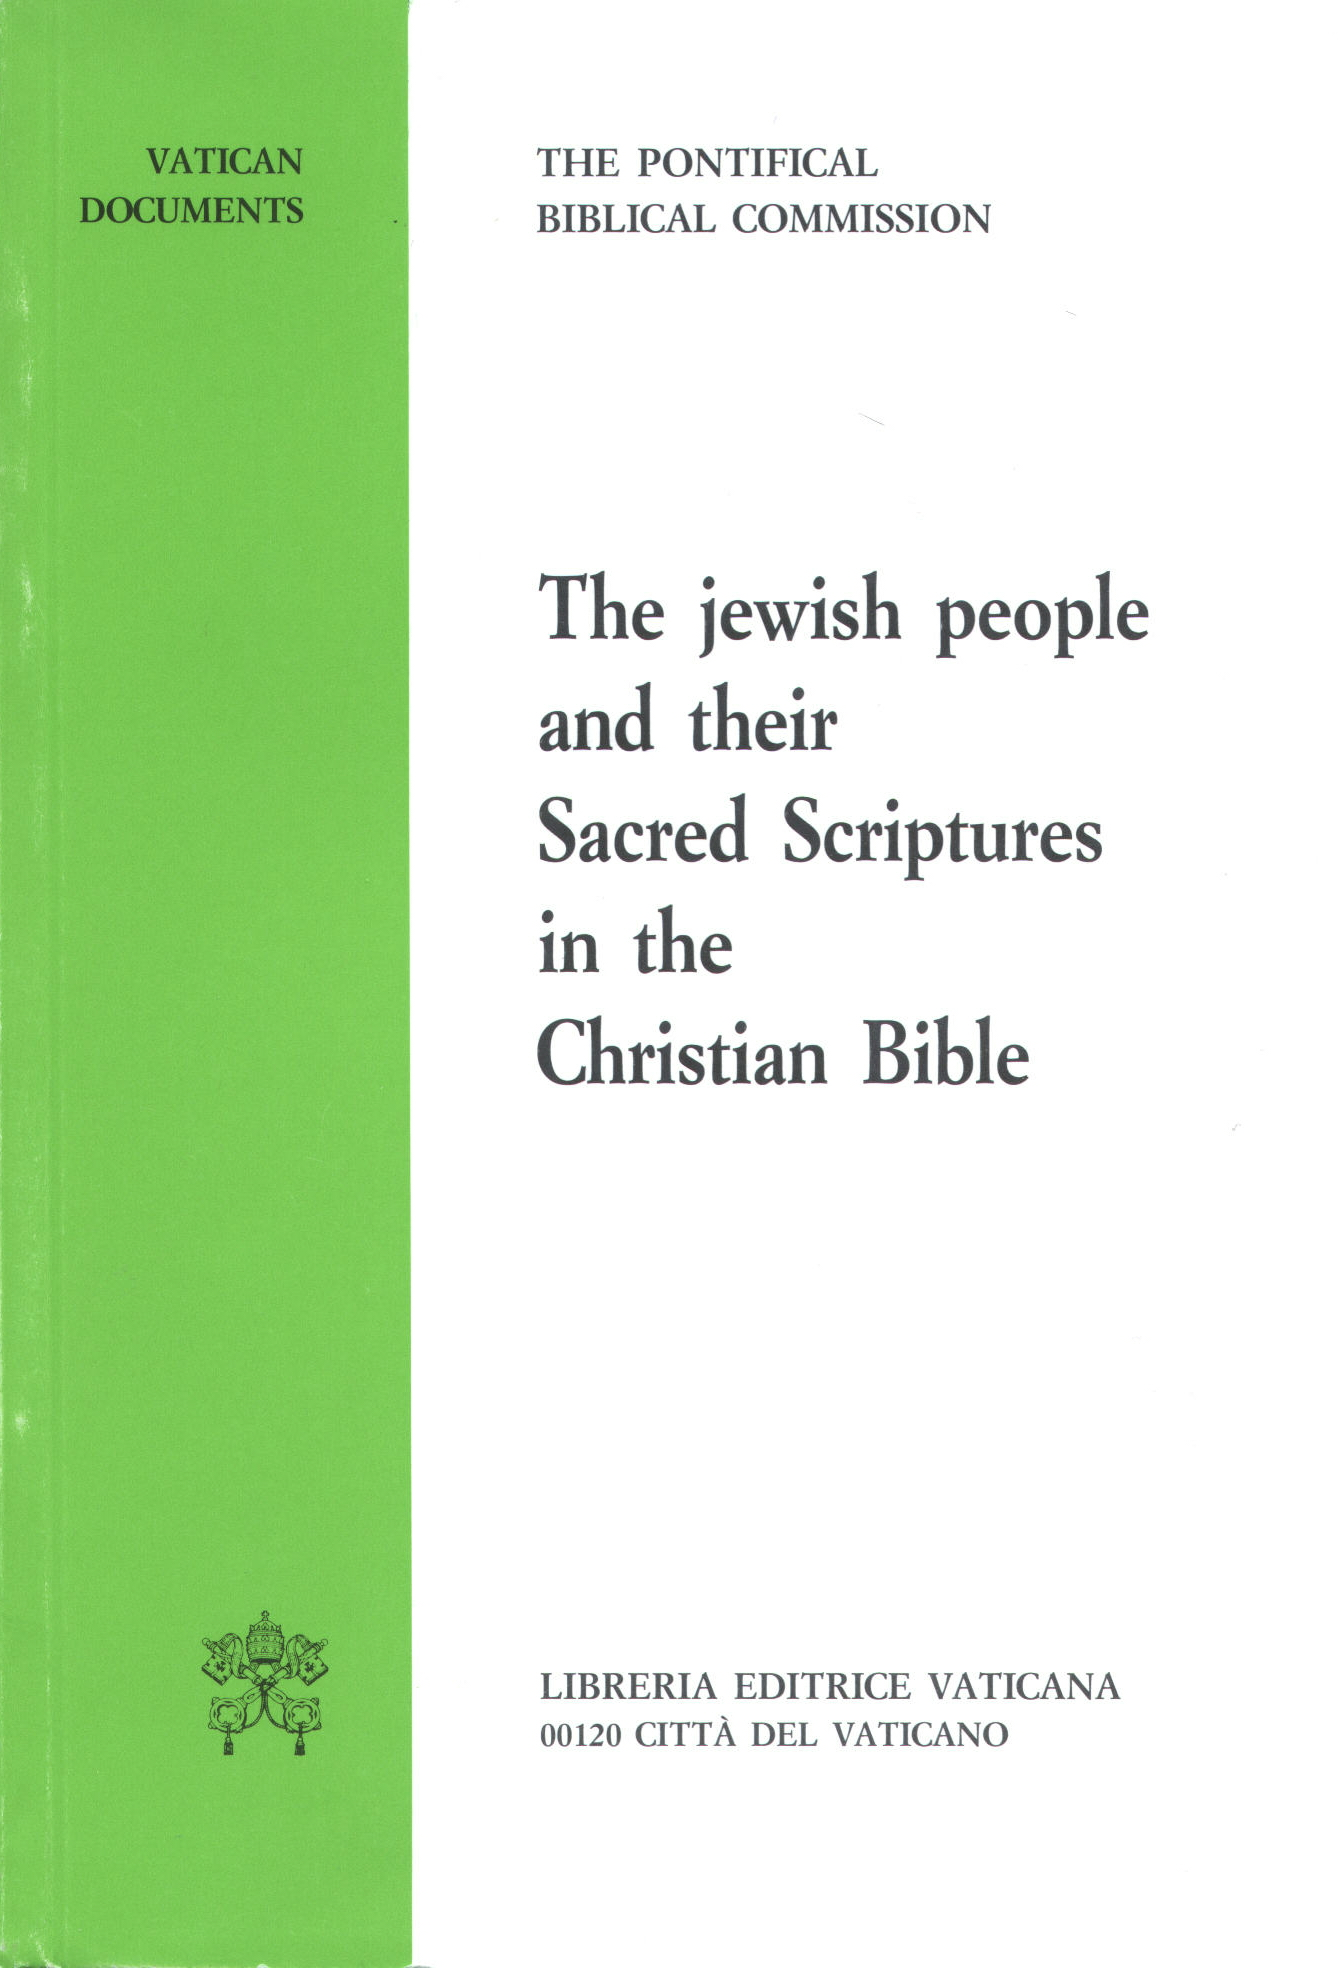 The Jewish People and Their Sacred Scriptures in the Christian Bible cover